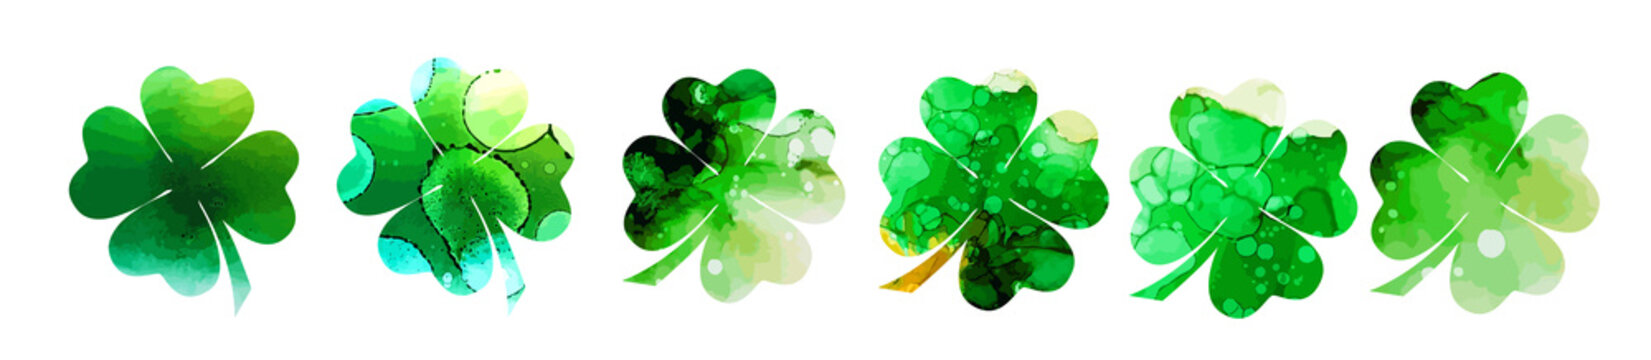 Set of watercolor four-leaf clovers. Happy St. Patrick's Day. mixed media. Vector illustration